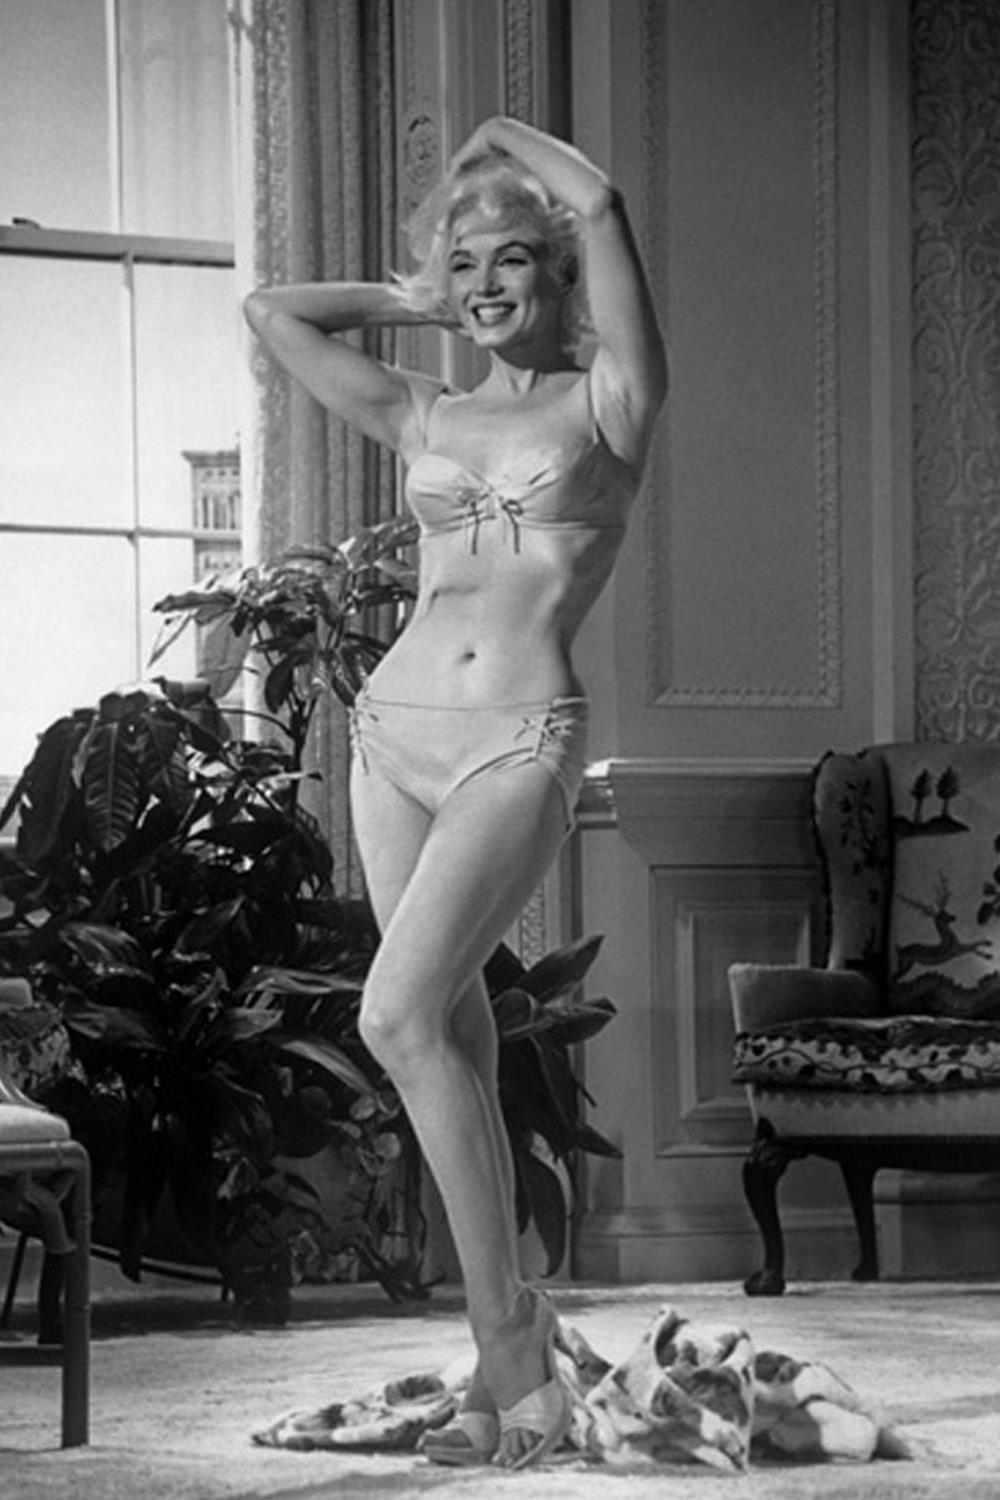 Marilyn Monroe en 'Somethings Got to Give'. Marilyn Monroe: talla 40